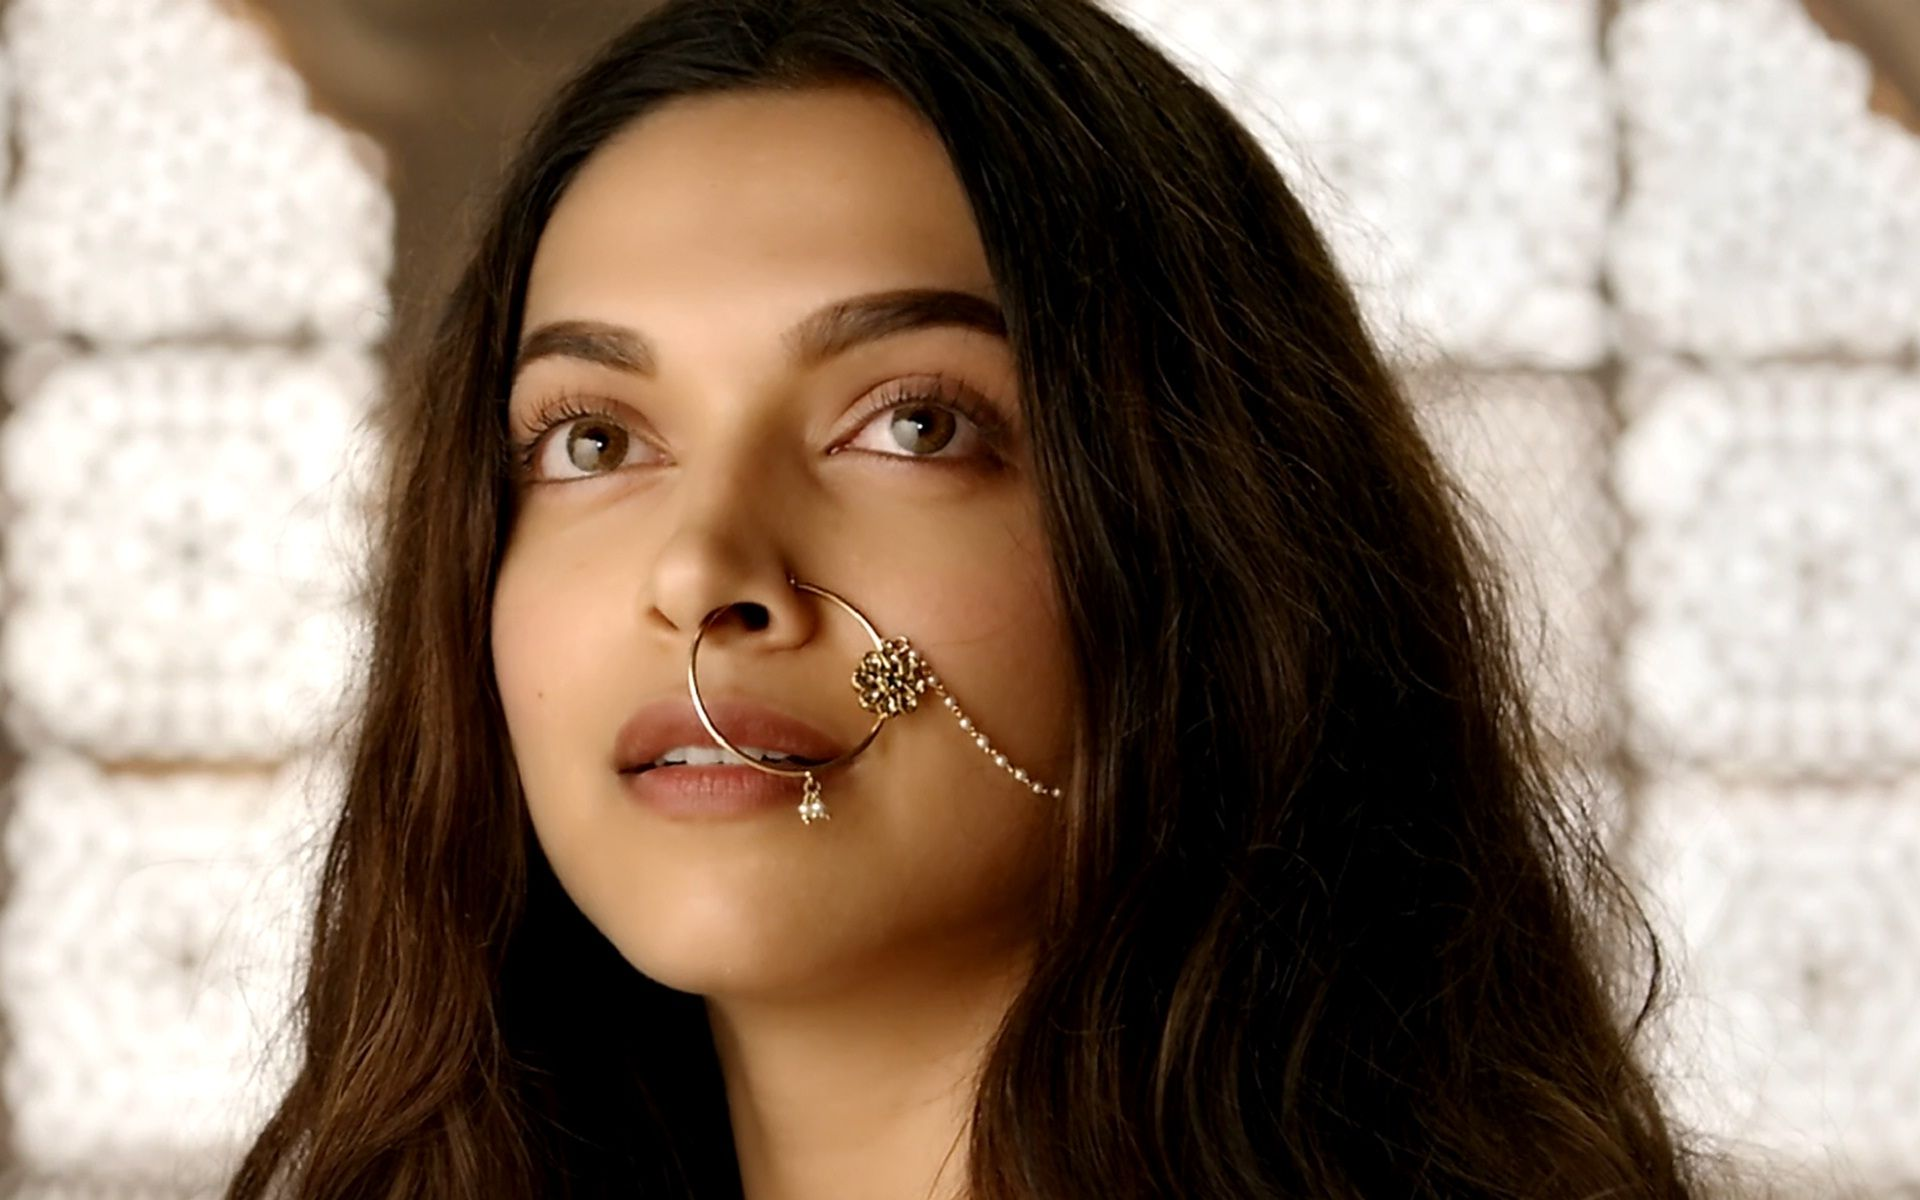 Deepika Padukone Latest Movie Scene Beautiful Actress Wallpaper Movie Scenes Actress Wallpaper Deepika Padukone